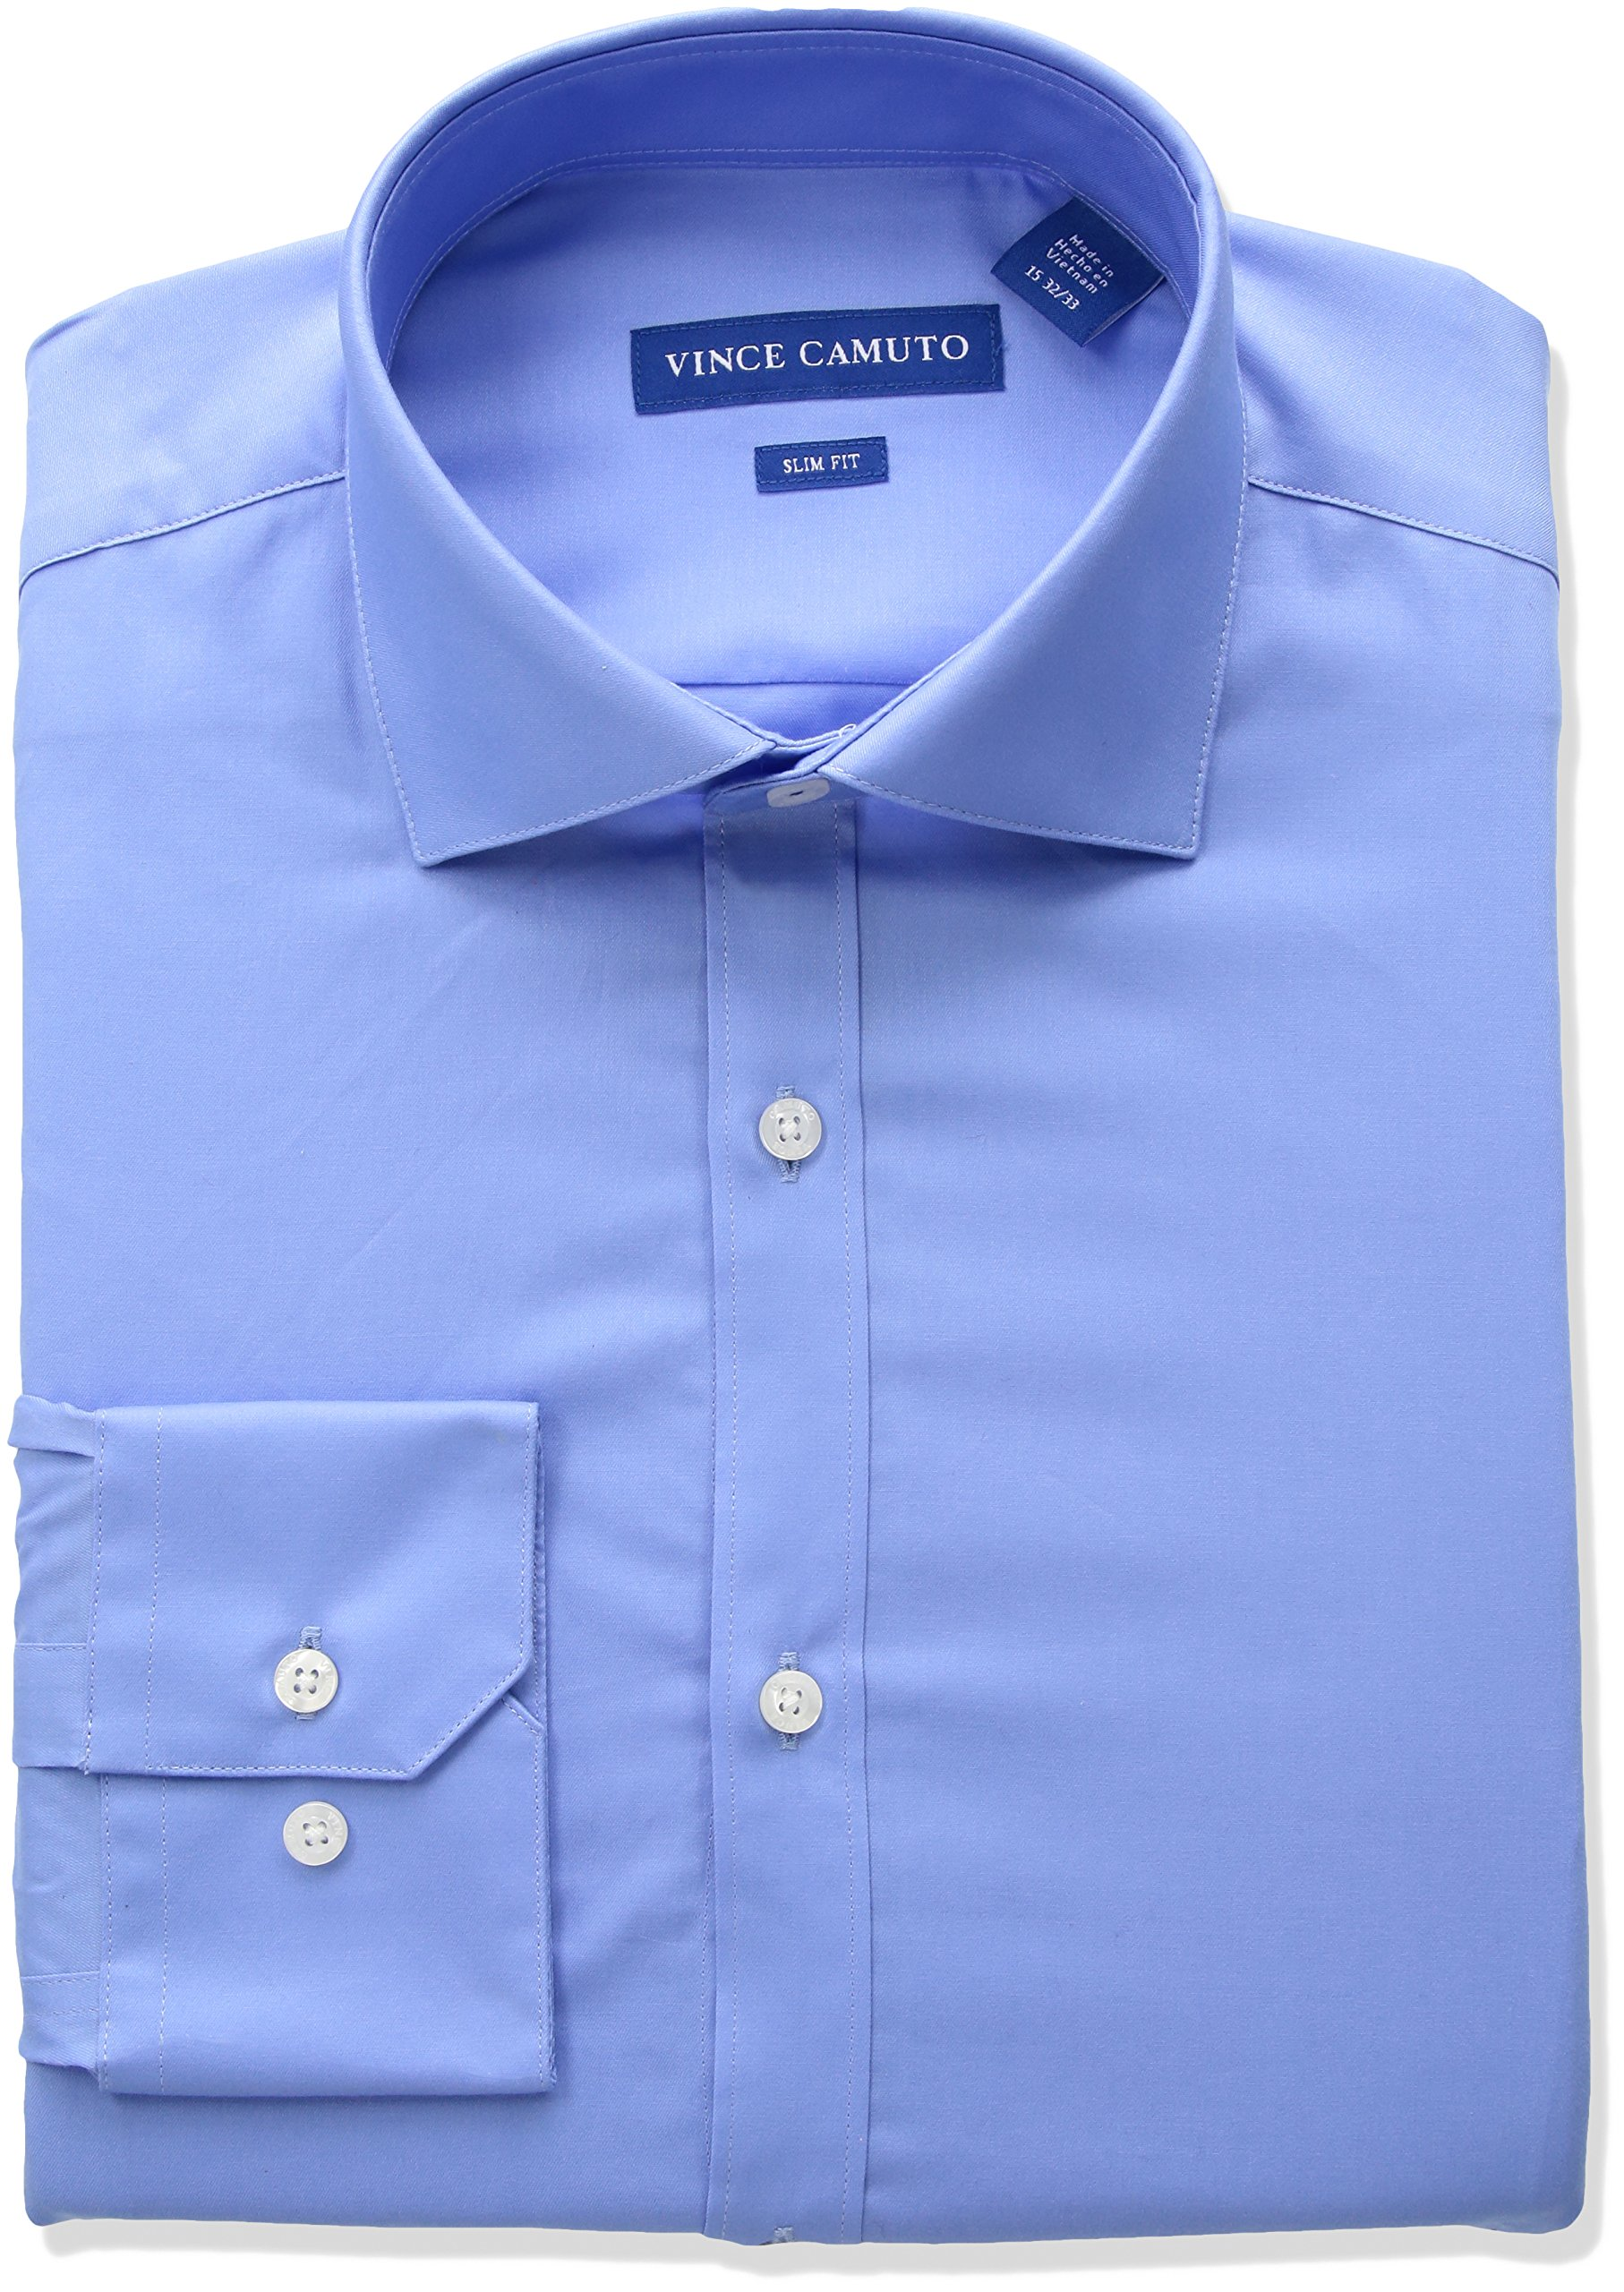 Vince Camuto Men's Slim Fit Stretch Collar Performance Solid Dress Shirt, French Blue, 16.5'' Neck 34''-35'' Sleeve